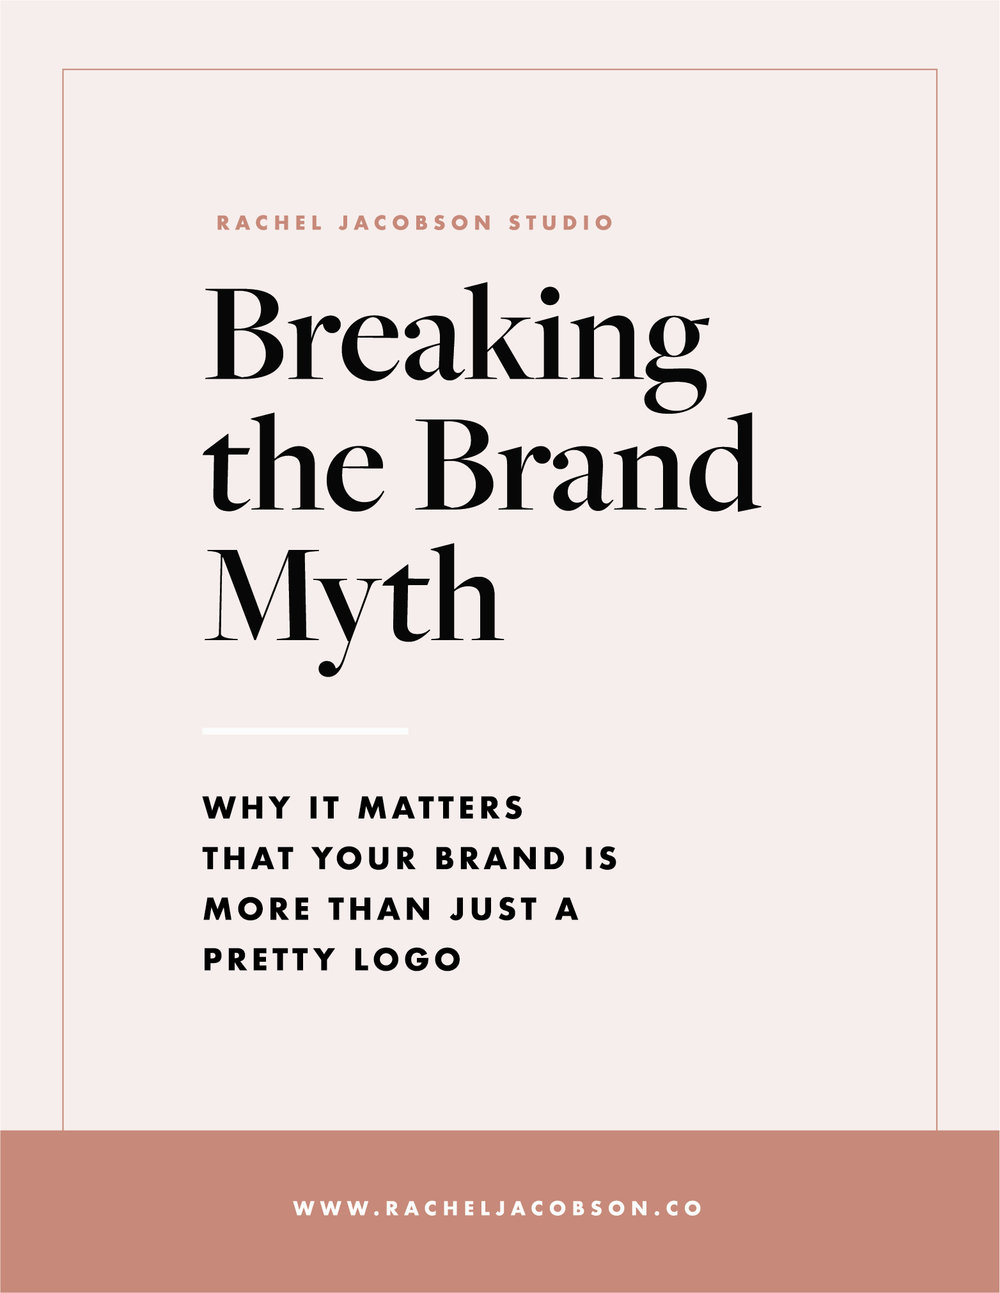 Breaking the Brand Myth-01.jpg